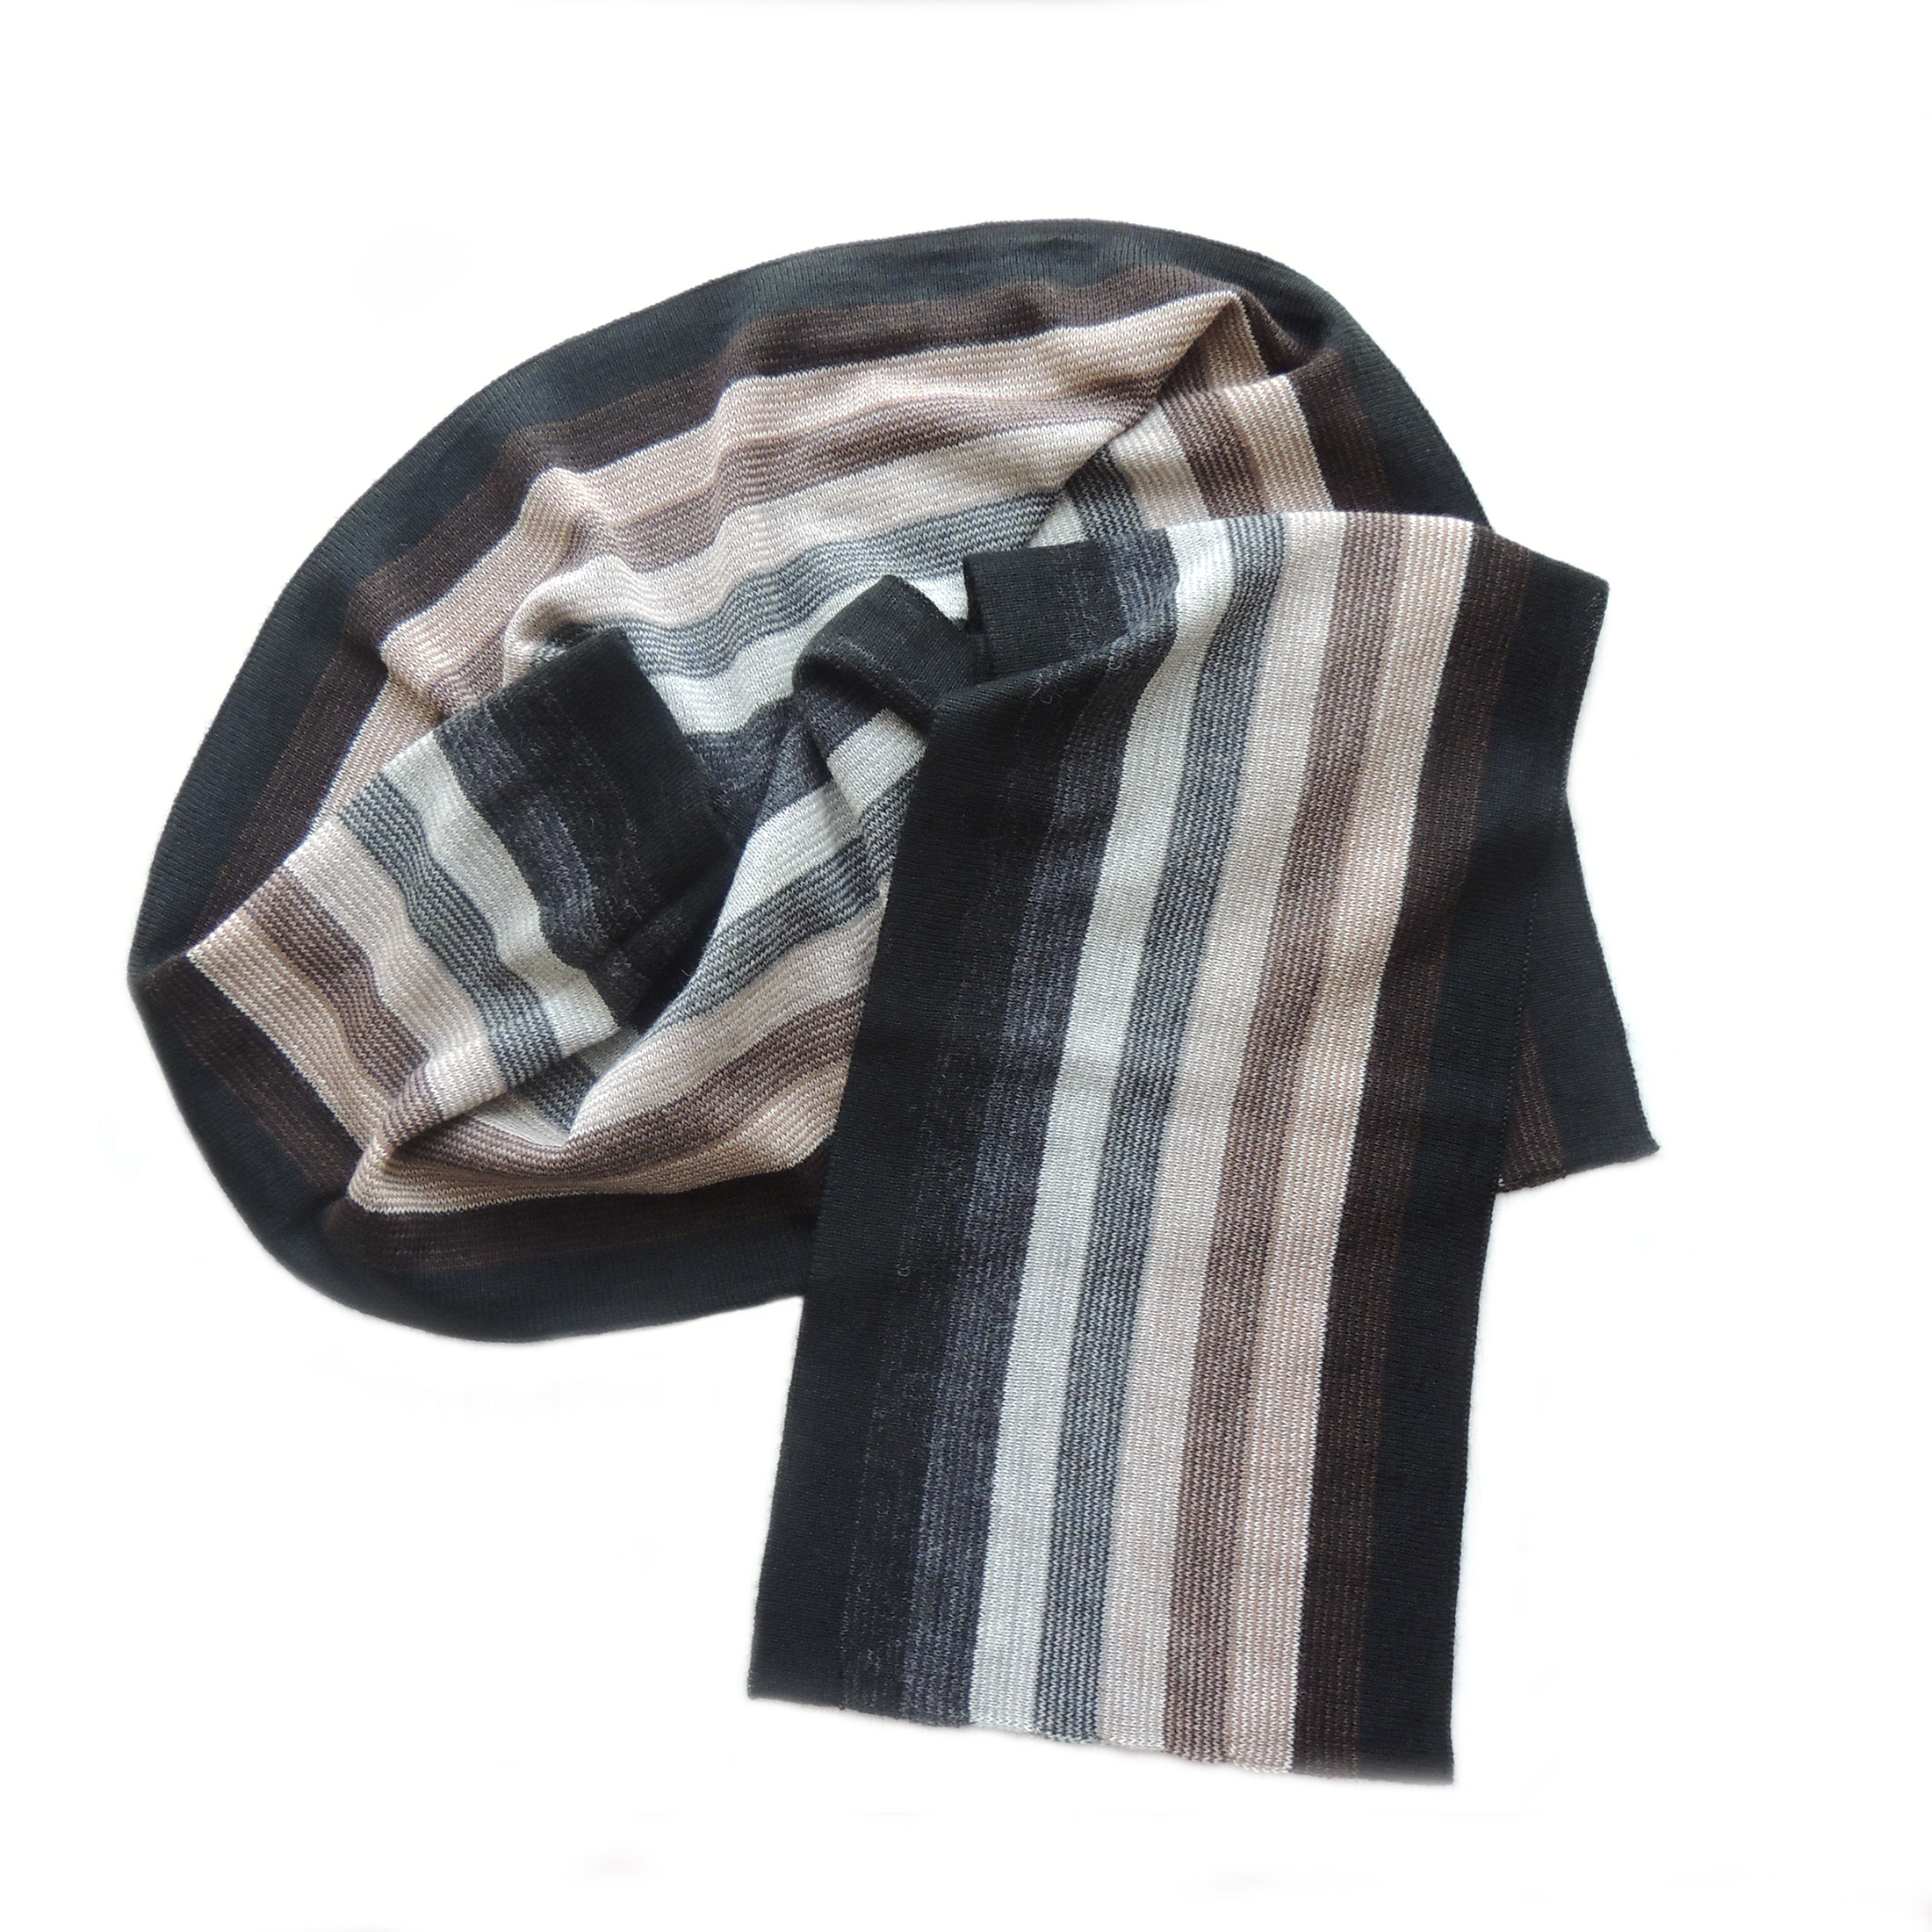 PFL knitwear Fine double knitted soft and warm scarf striped pattern black-gray-brown-beige unisex 100% baby alpaca.